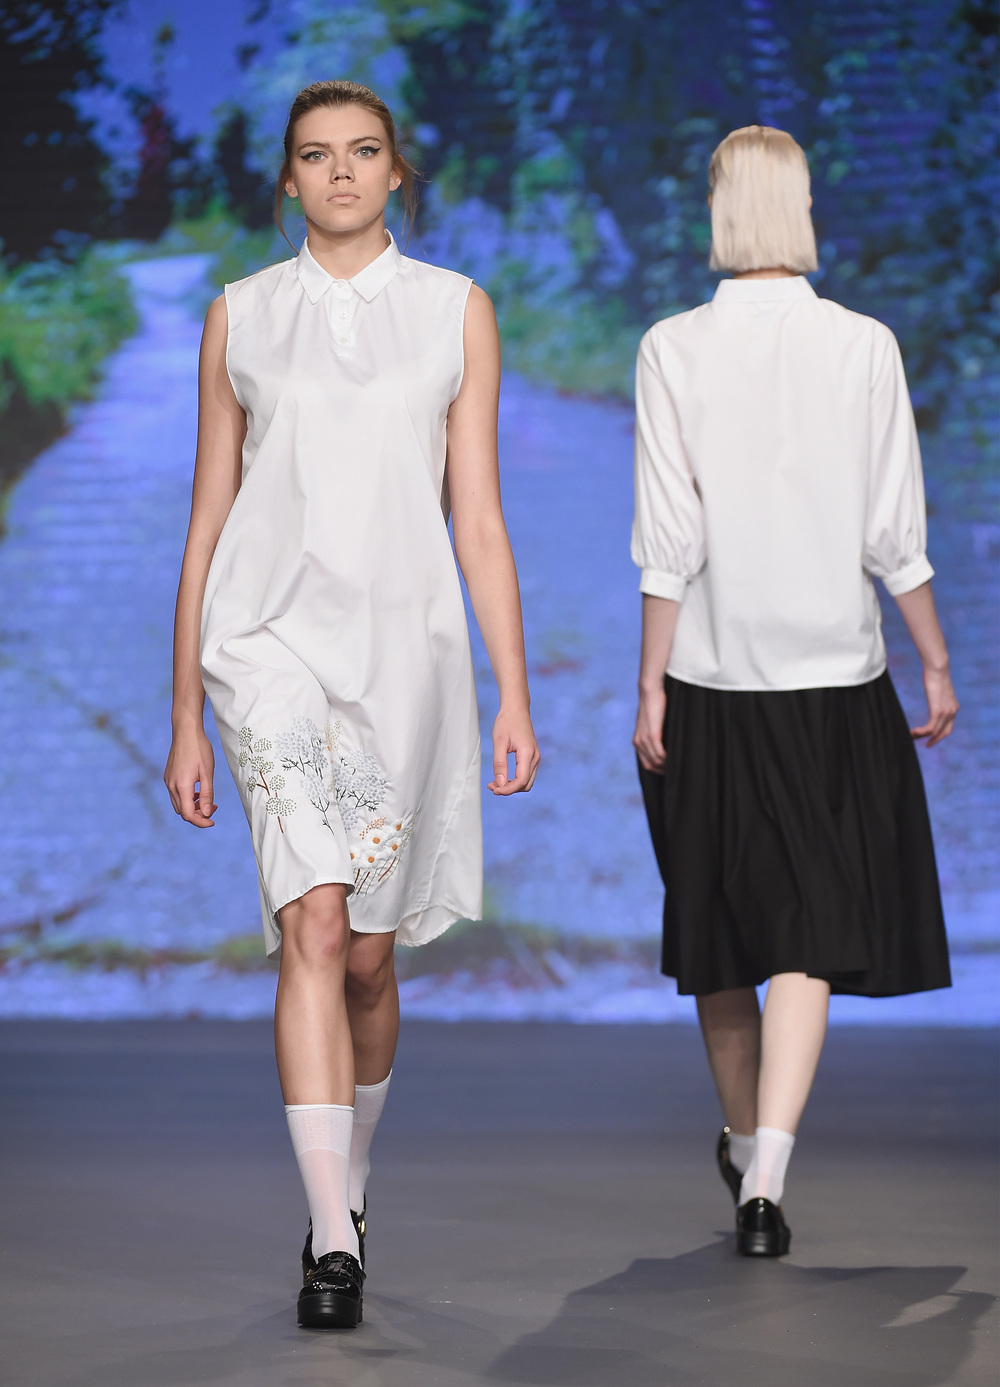 FFWD_Starch Foundation Show_022.JPG